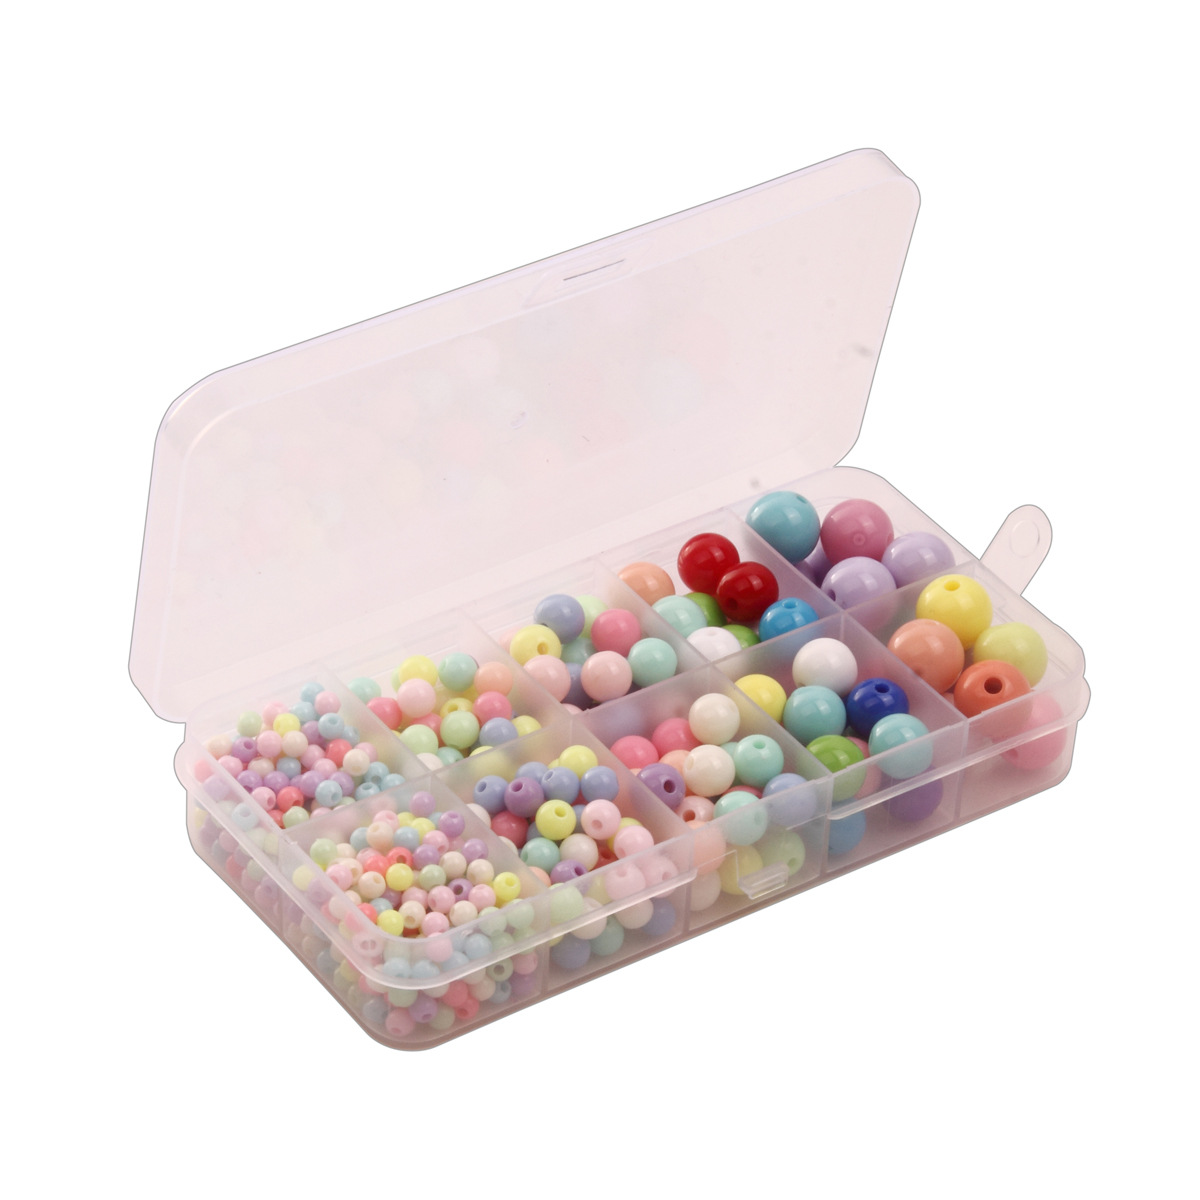 4-12mm Mixed Children Round Beads Set With Holes Beaded Bracelet Loose Beads Toy Accessories Intelligence Hand-Eye Coordination